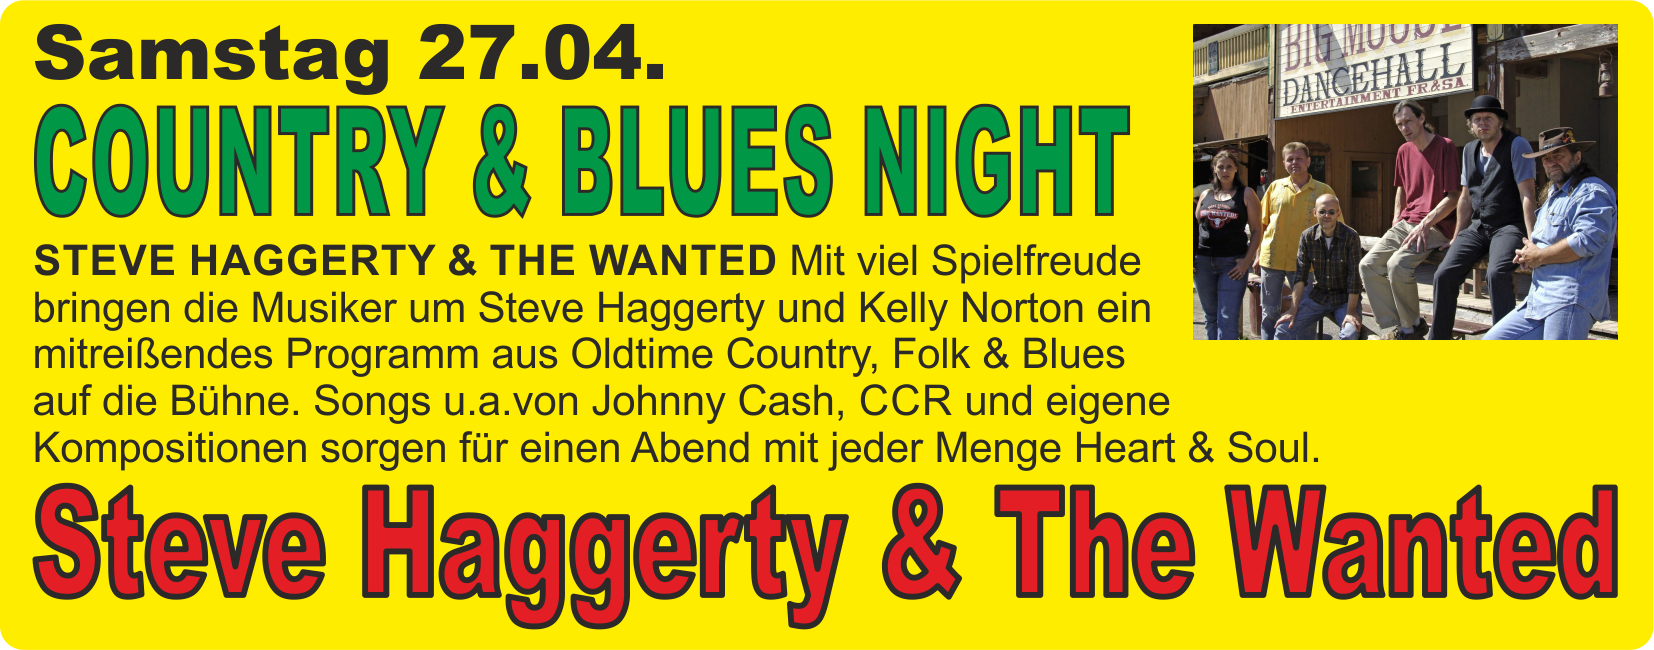 Country & Blues Night mit Steve Haggerty & the Wanted @ Harz Mountain Ranch | Bad Lauterberg im Harz | Niedersachsen | Deutschland